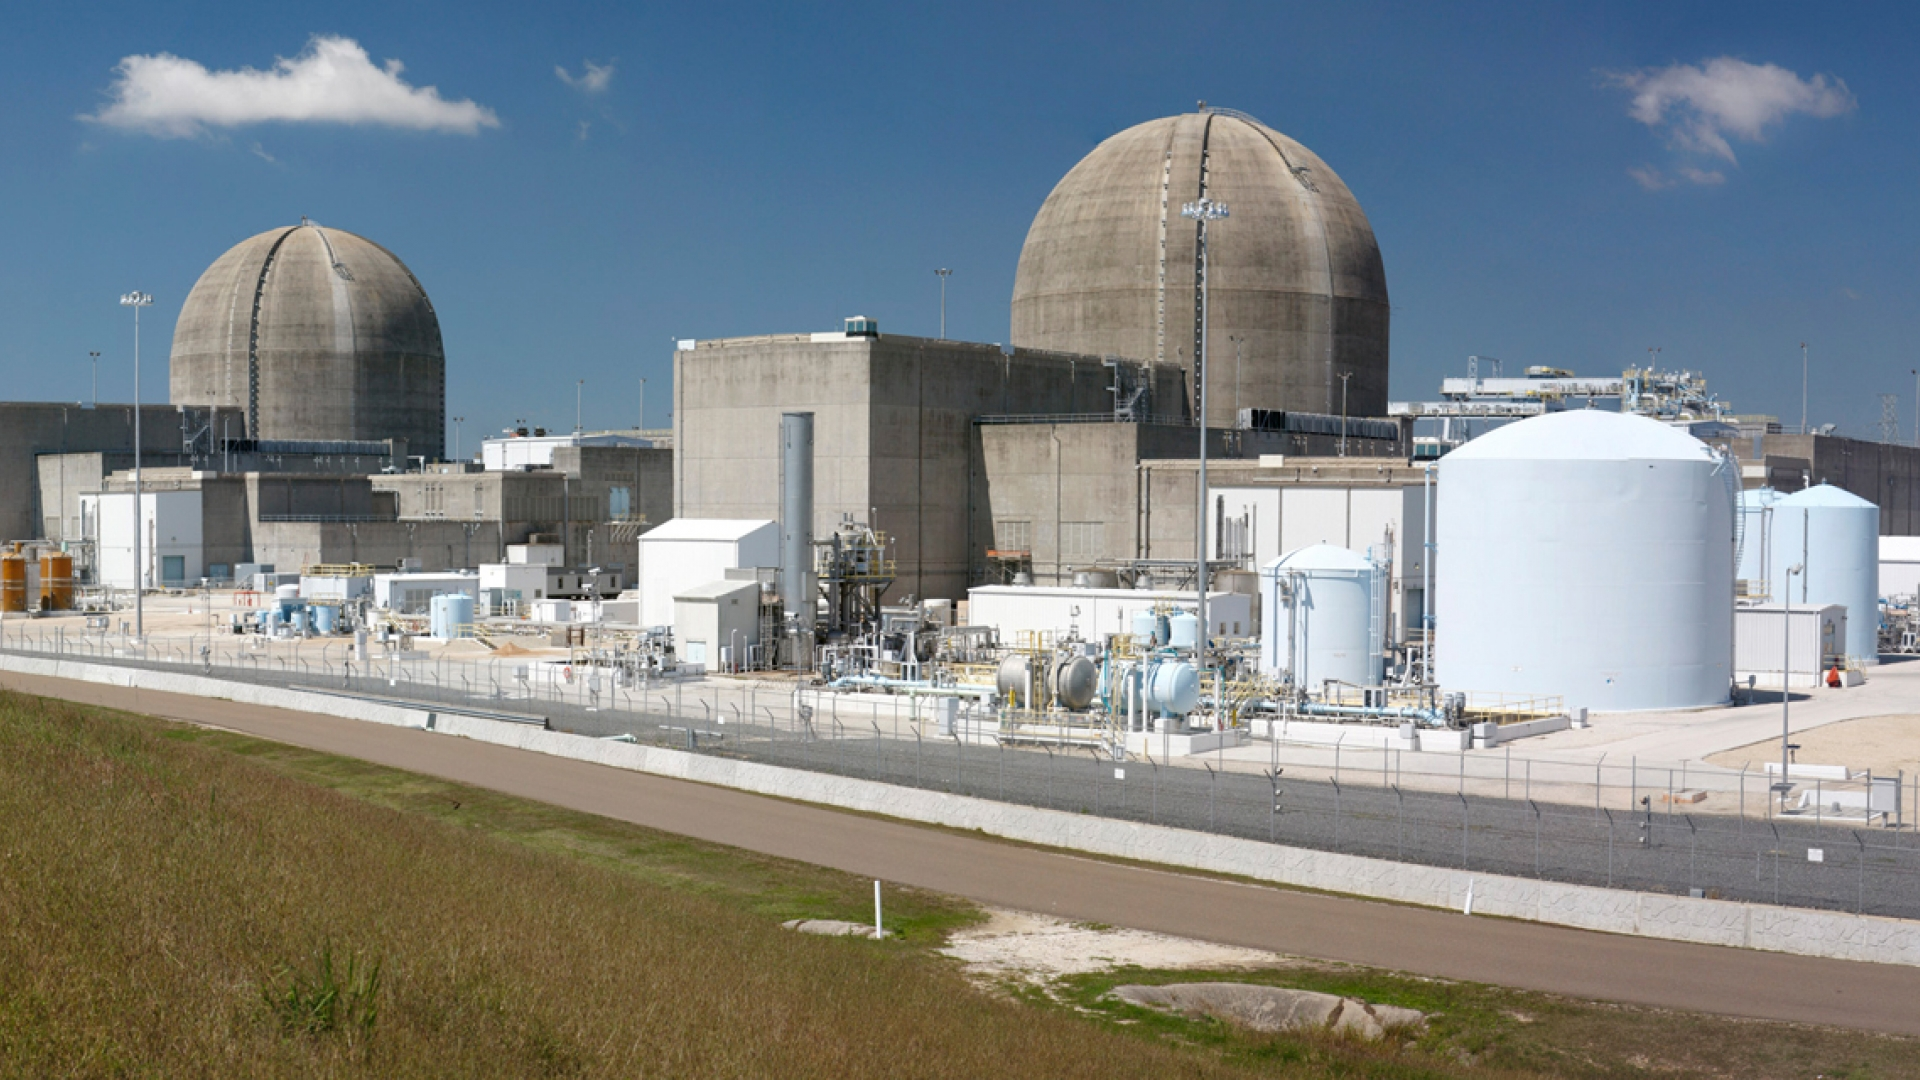 Iaea Conference On Nuclear Power Plant Life Management Opens  Iaea On  September  The Us Nuclear Regulatory Commission Nrc Renewed  The Operating Licenses Of South Texas Project Unit  And Unit  For An  Additional  Assignment Writer Companies also Scholarship Writing Services  Creative Writer Company